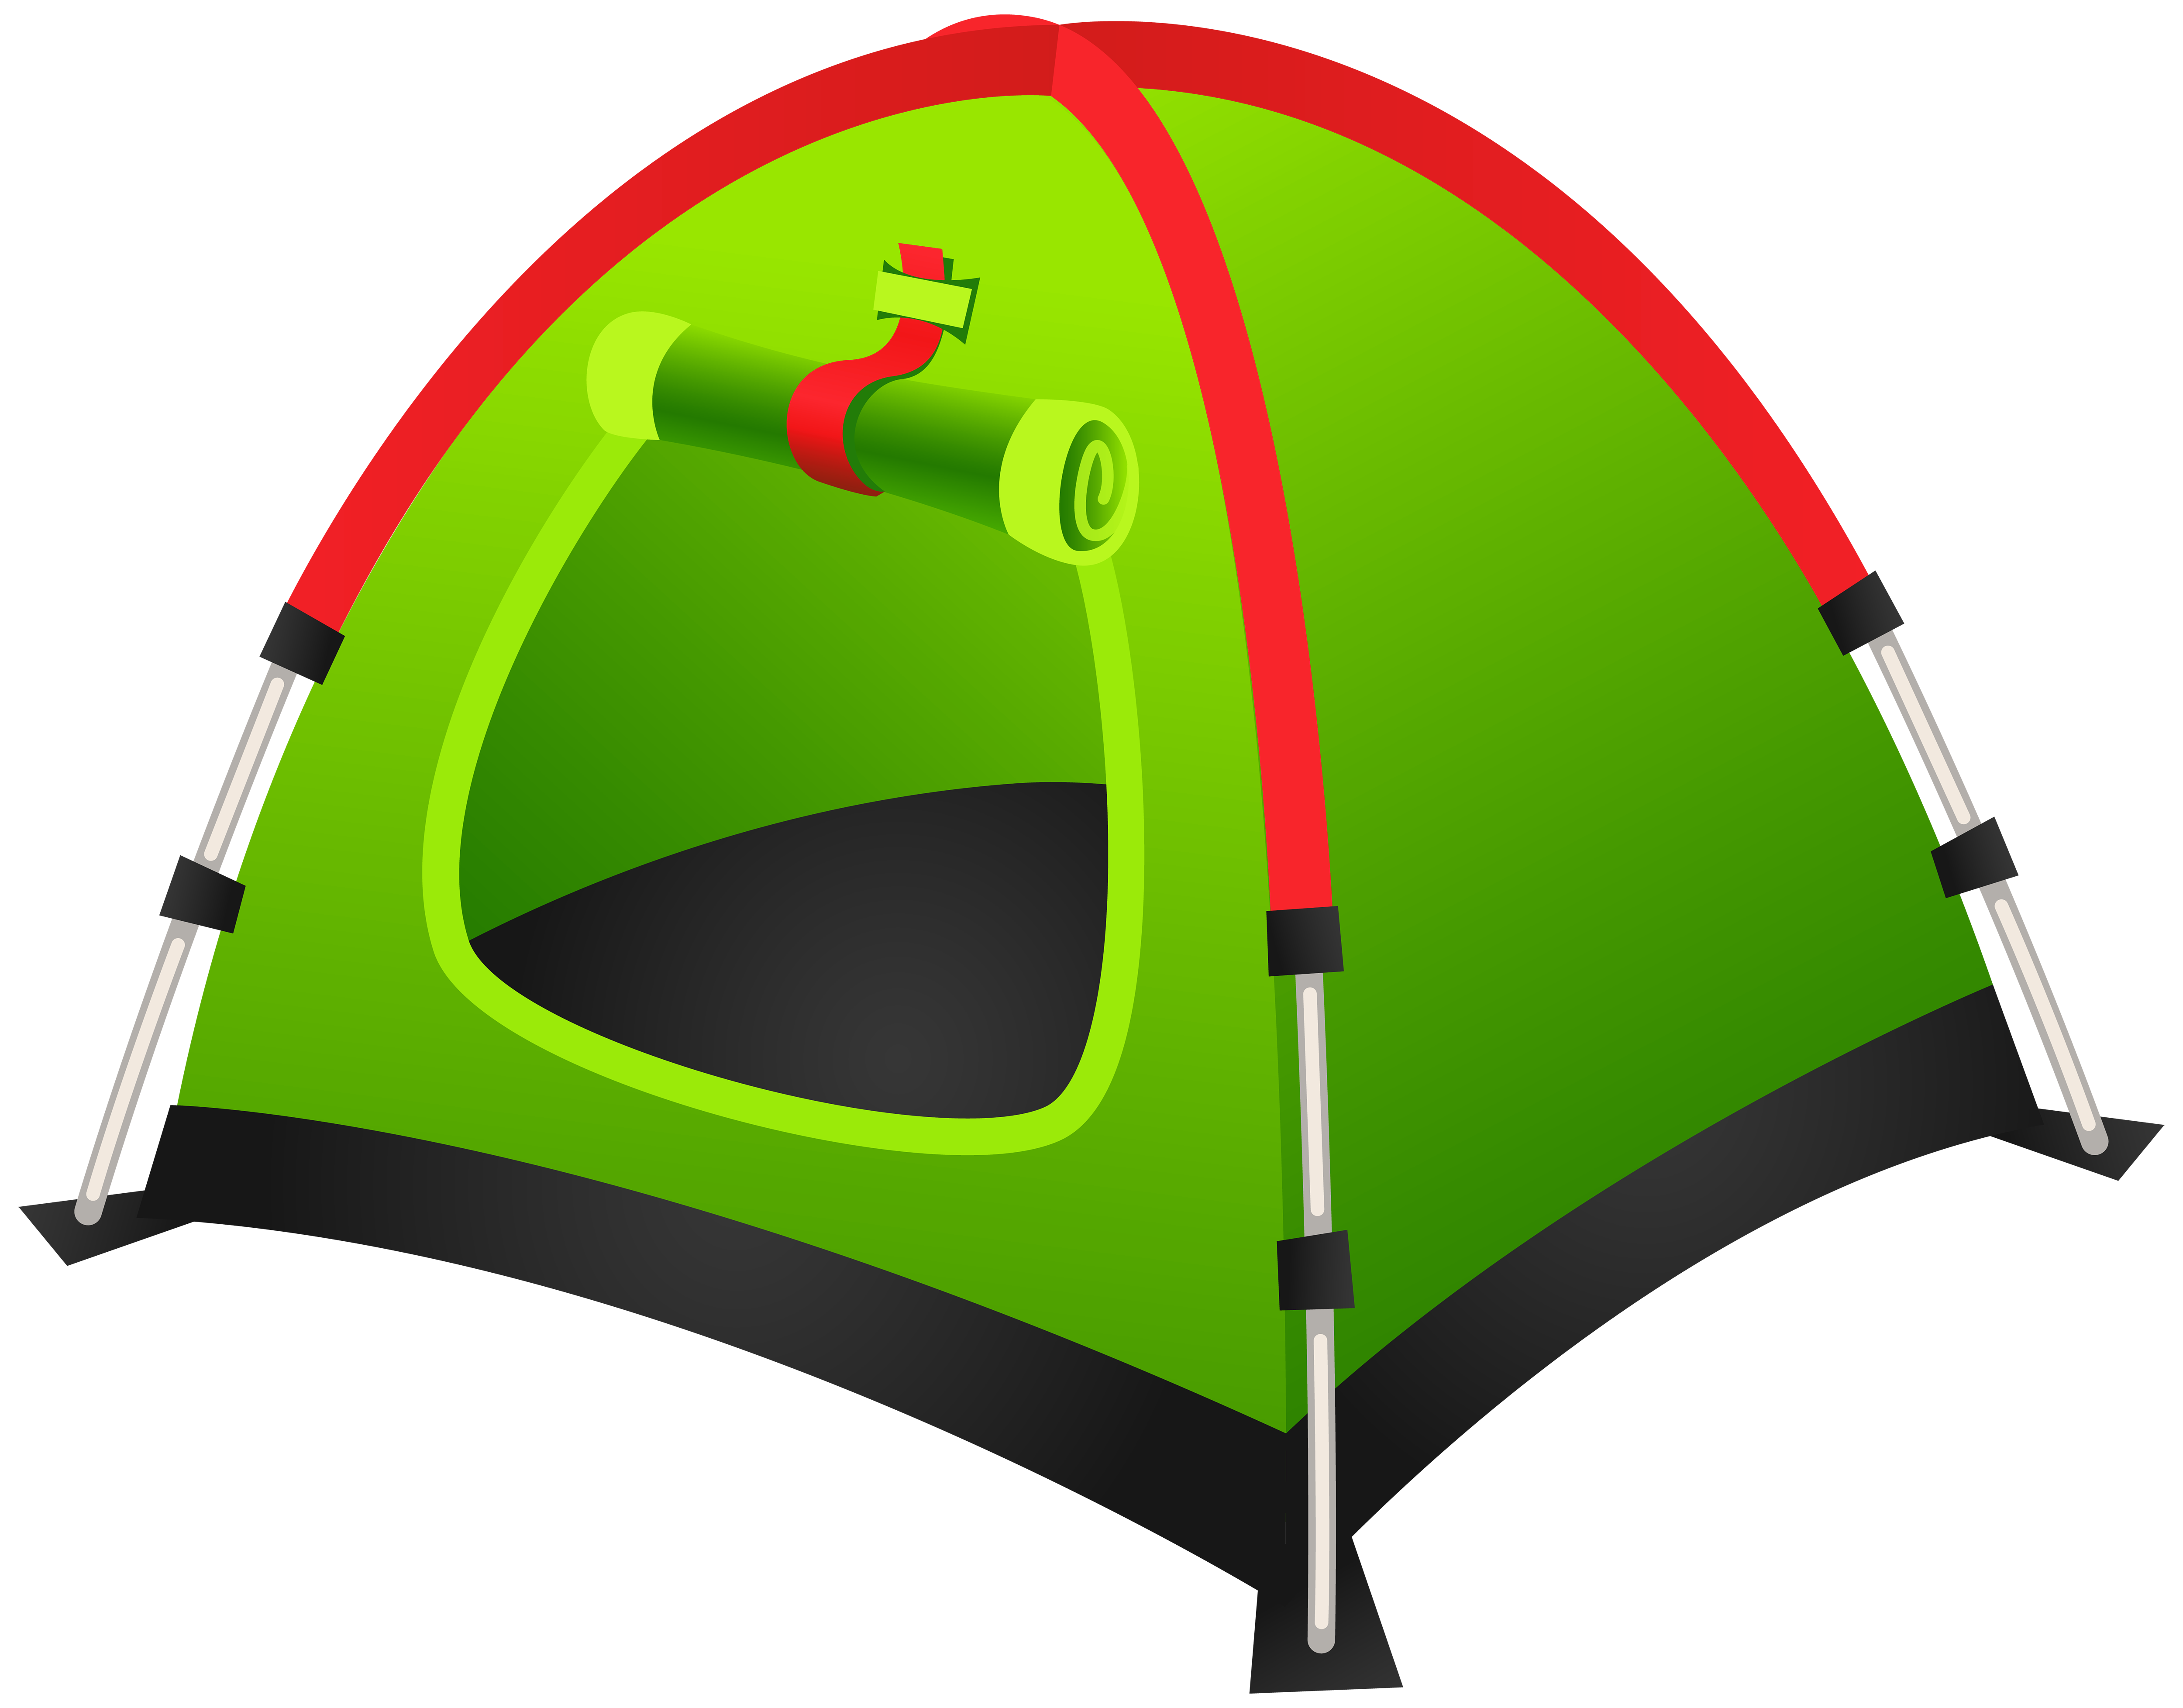 graphic download Tourist green png image. Tent clipart.